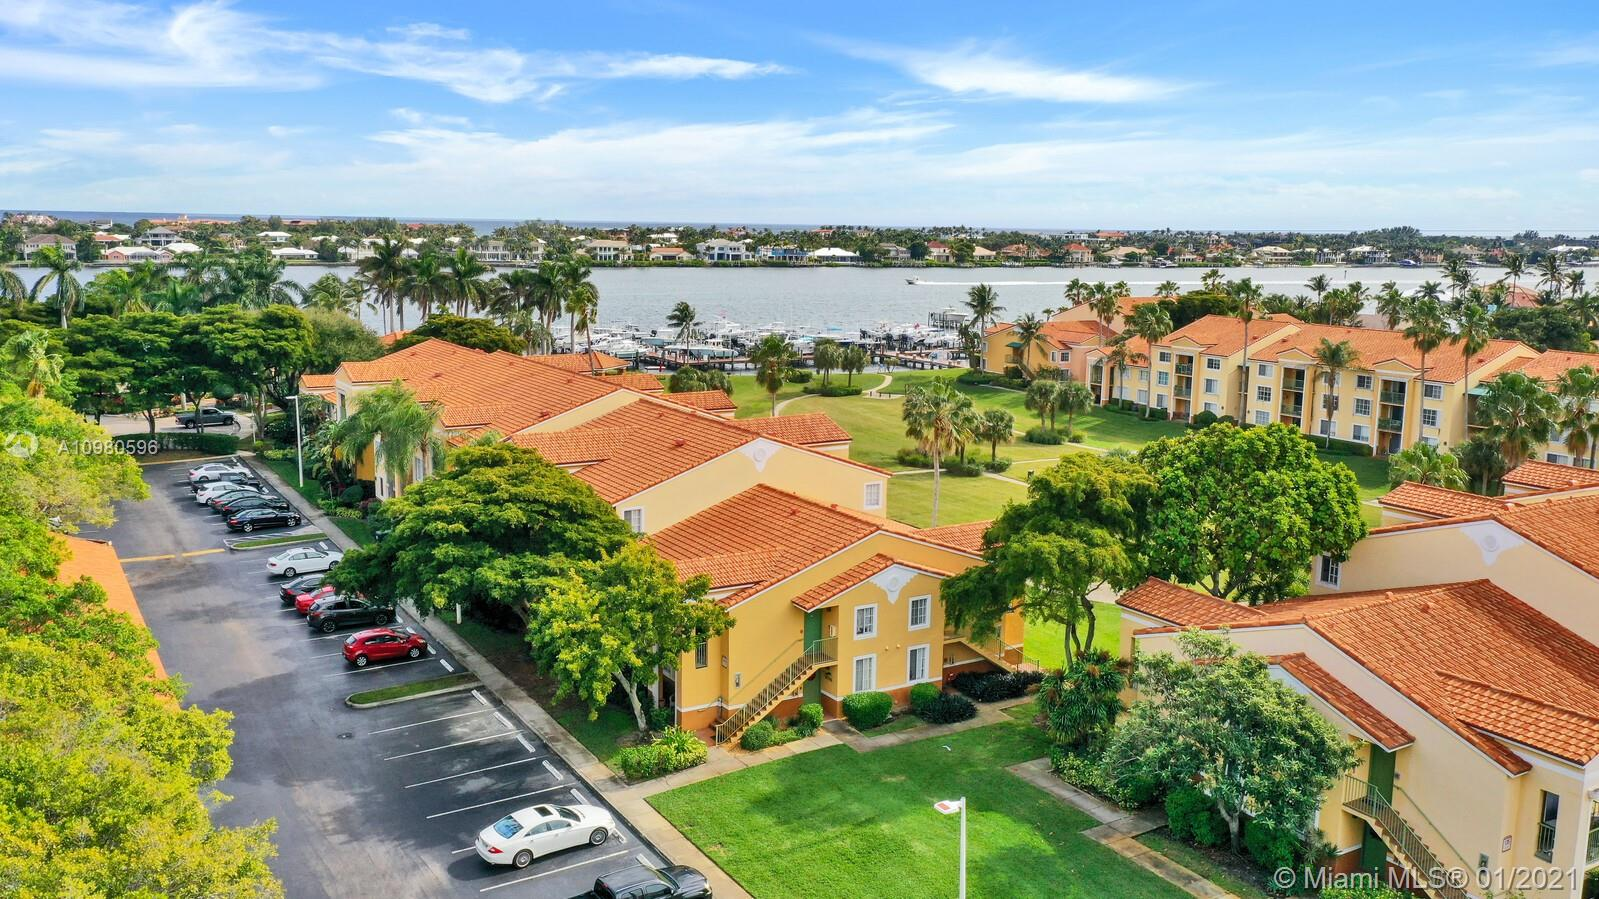 145 Yacht Club Way Unit 212, Hypoluxo, Florida 33462